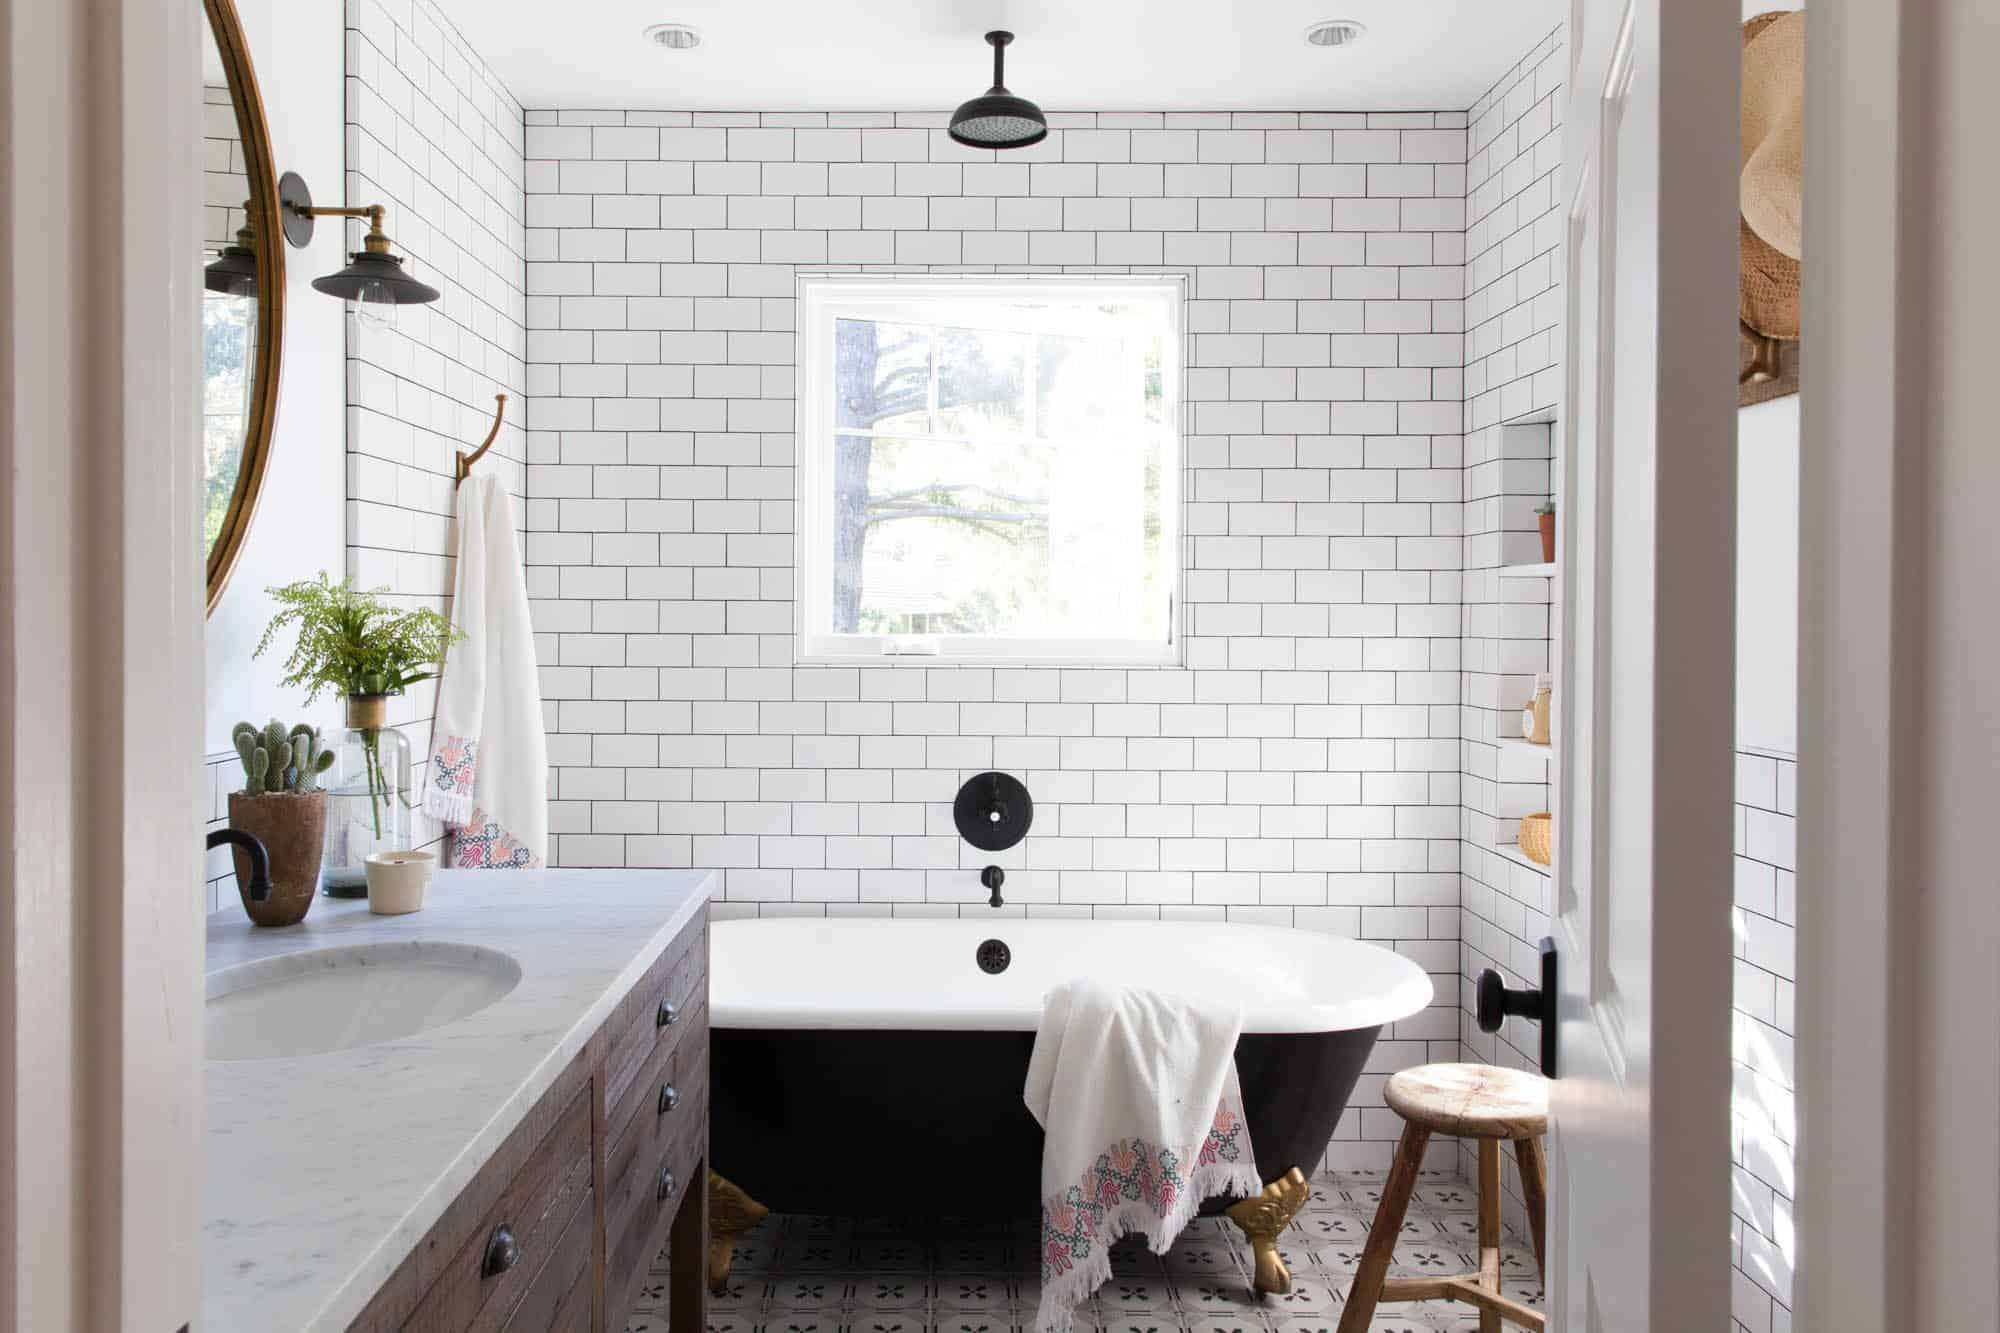 A small primary bathroom with a combination clawfoot tub and open-air shower